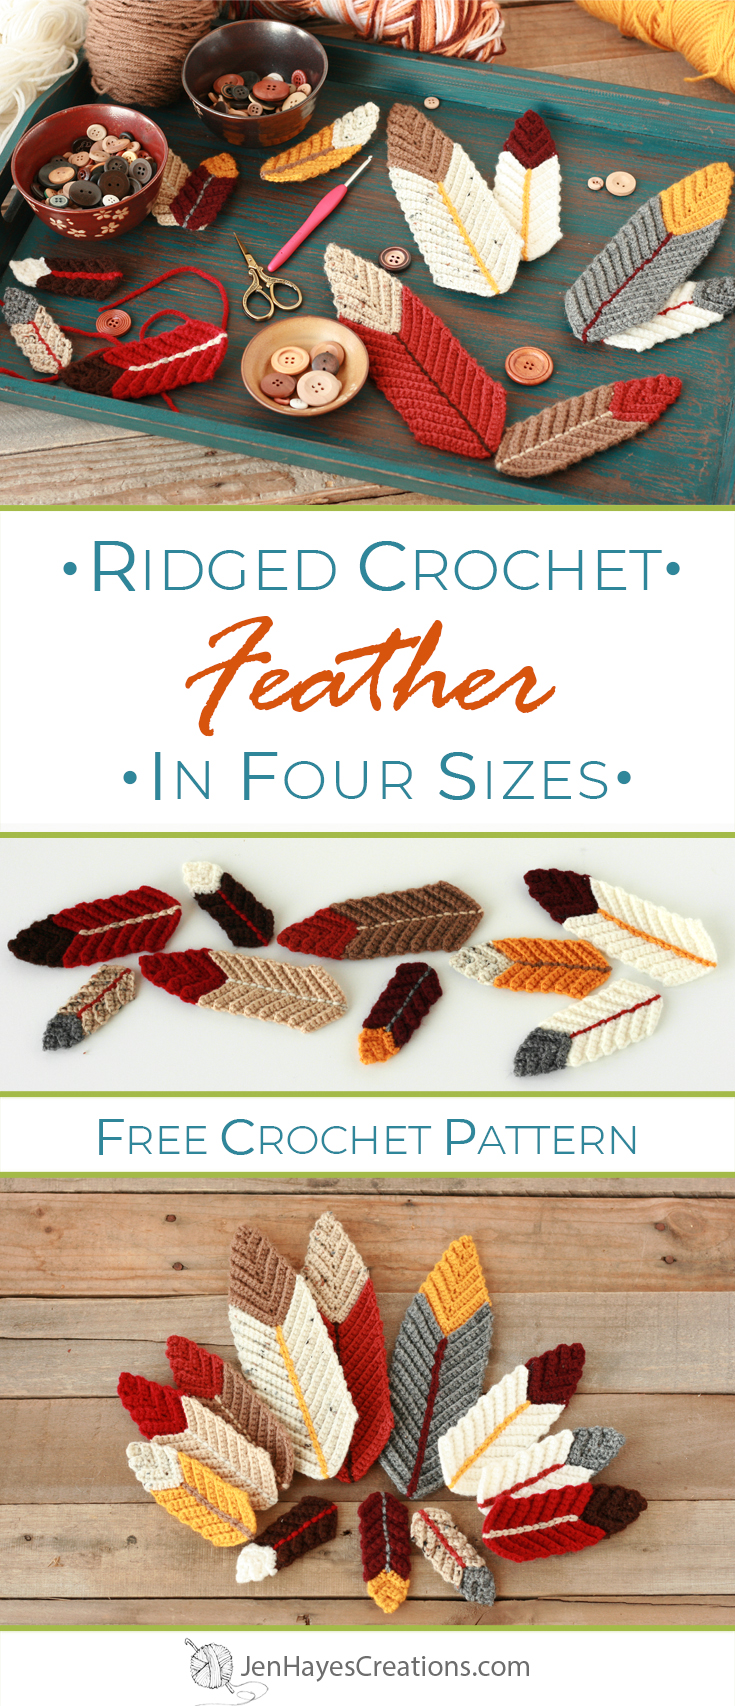 Ridged Crochet Feathers In Four Sizes Jen Hayes Creations